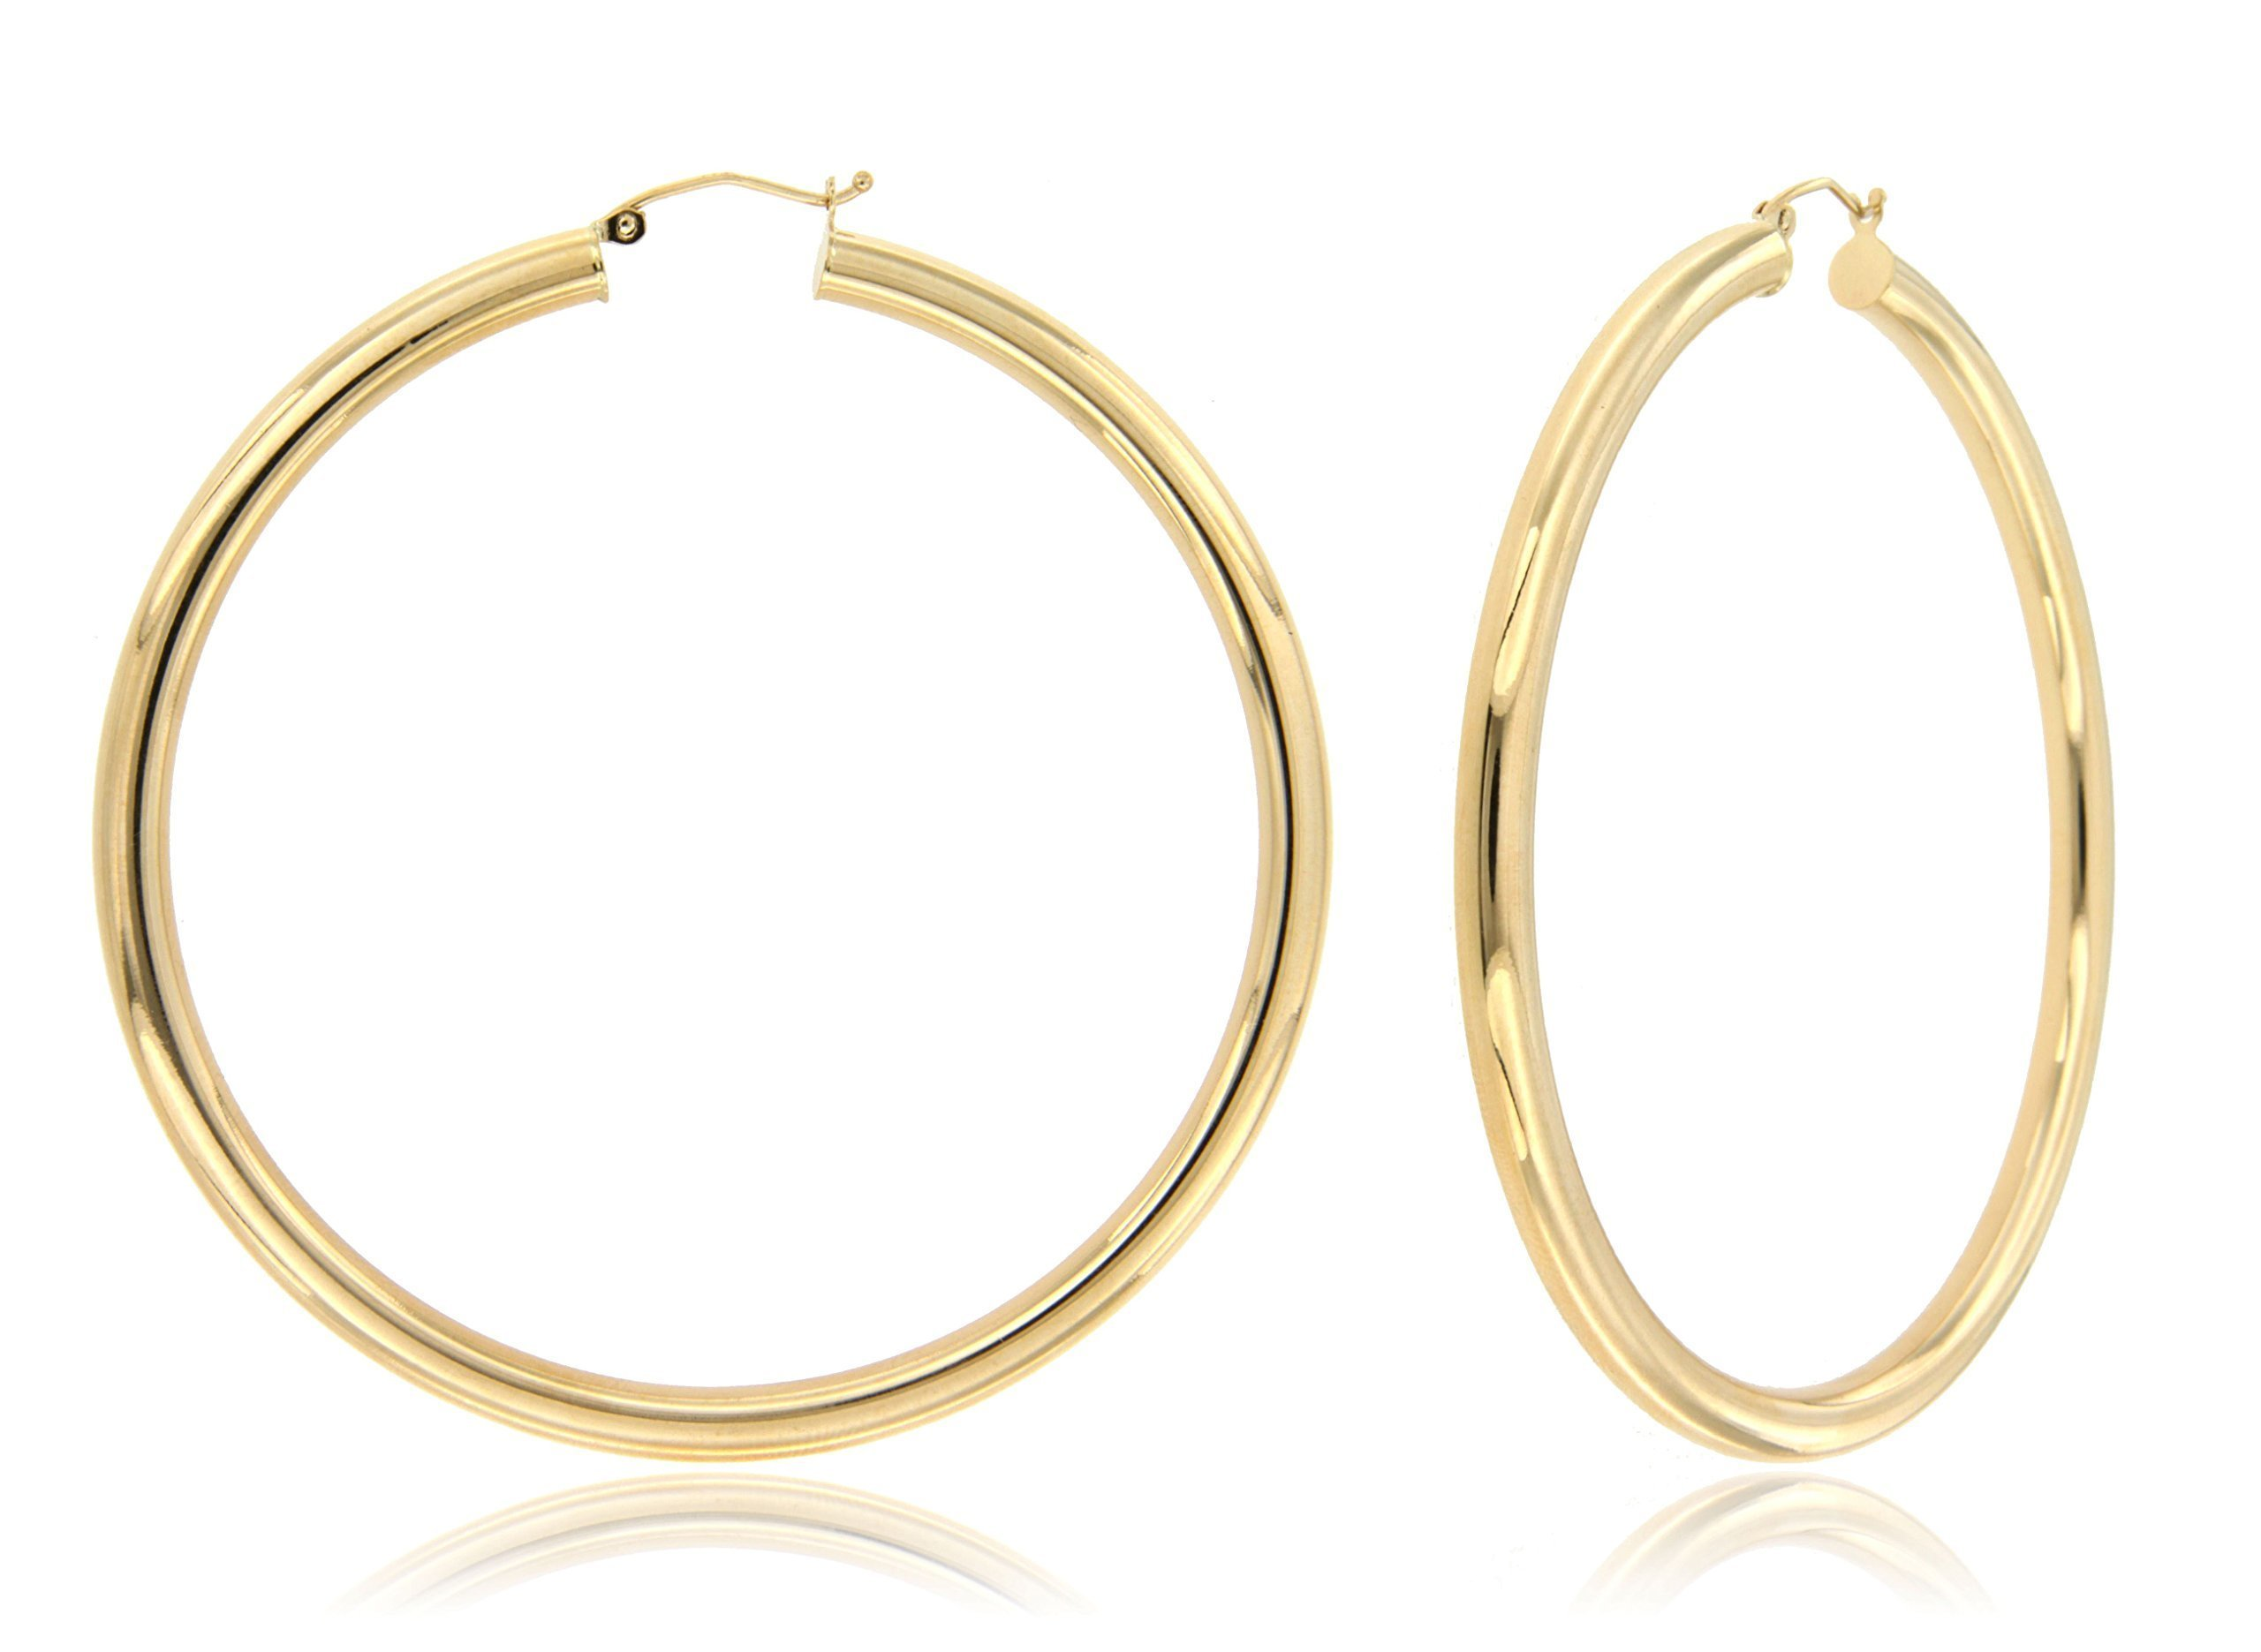 Balluccitoosi Plain Hoop Earrings - 14k Yellow Gold Earring for Women and Girls - Diamond cut Unique Jewelry for Everyday